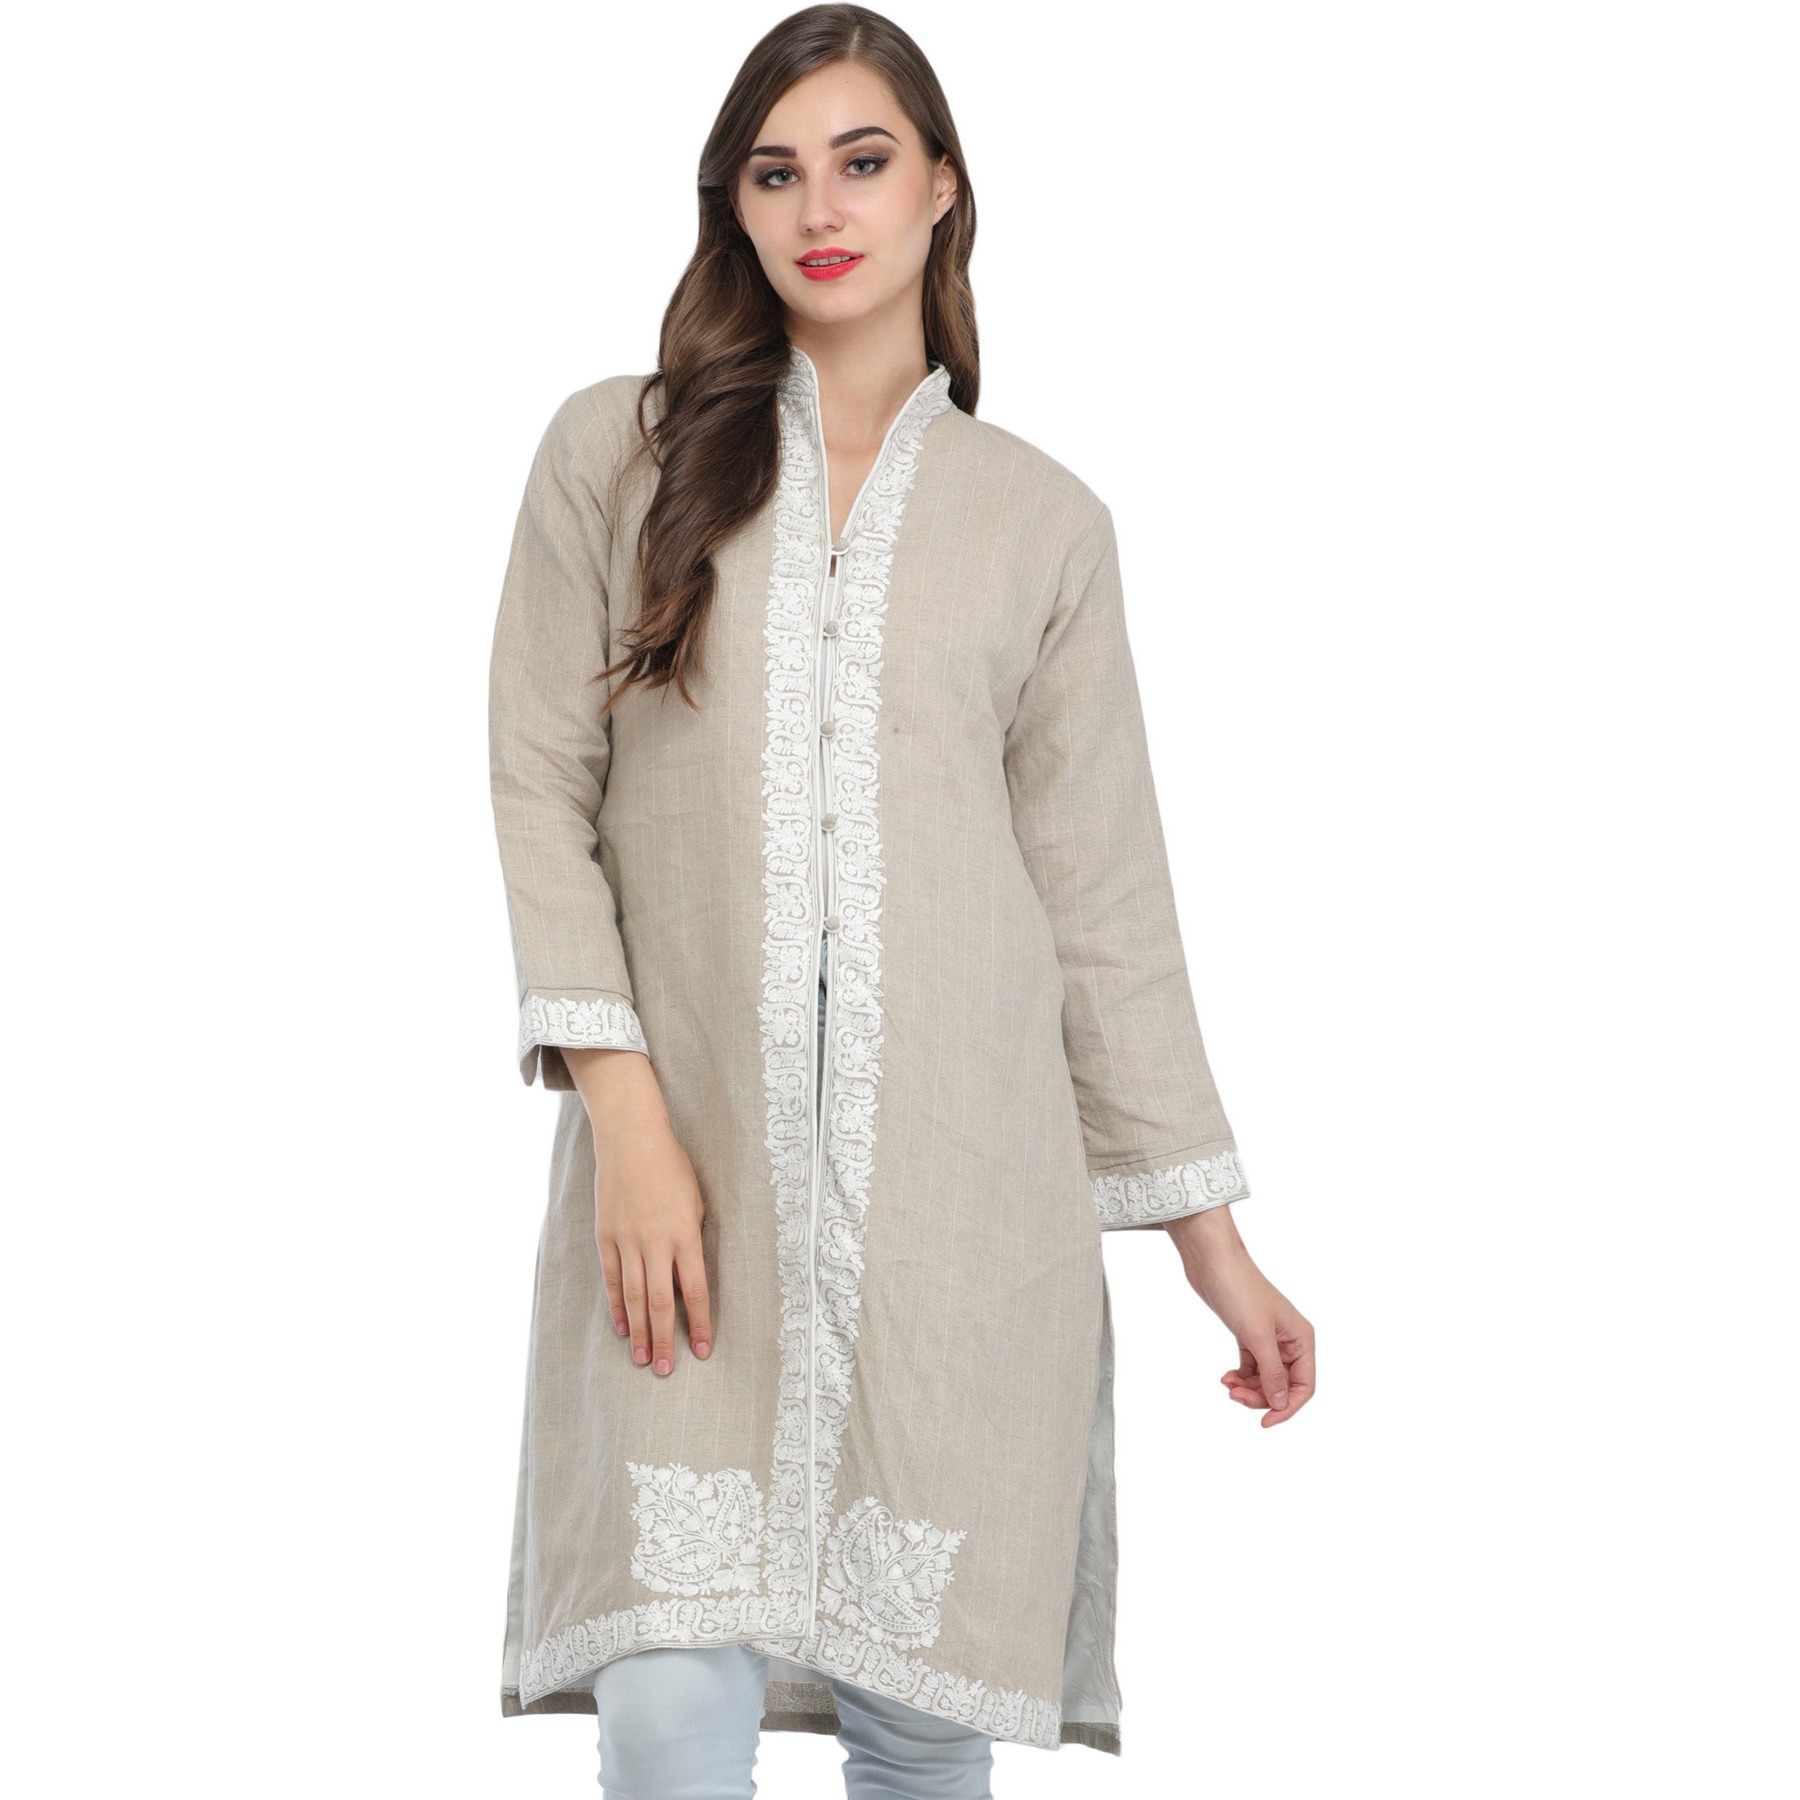 Whitecap-Gray Jacket from Kashmir with Ari-Embroidery on Border